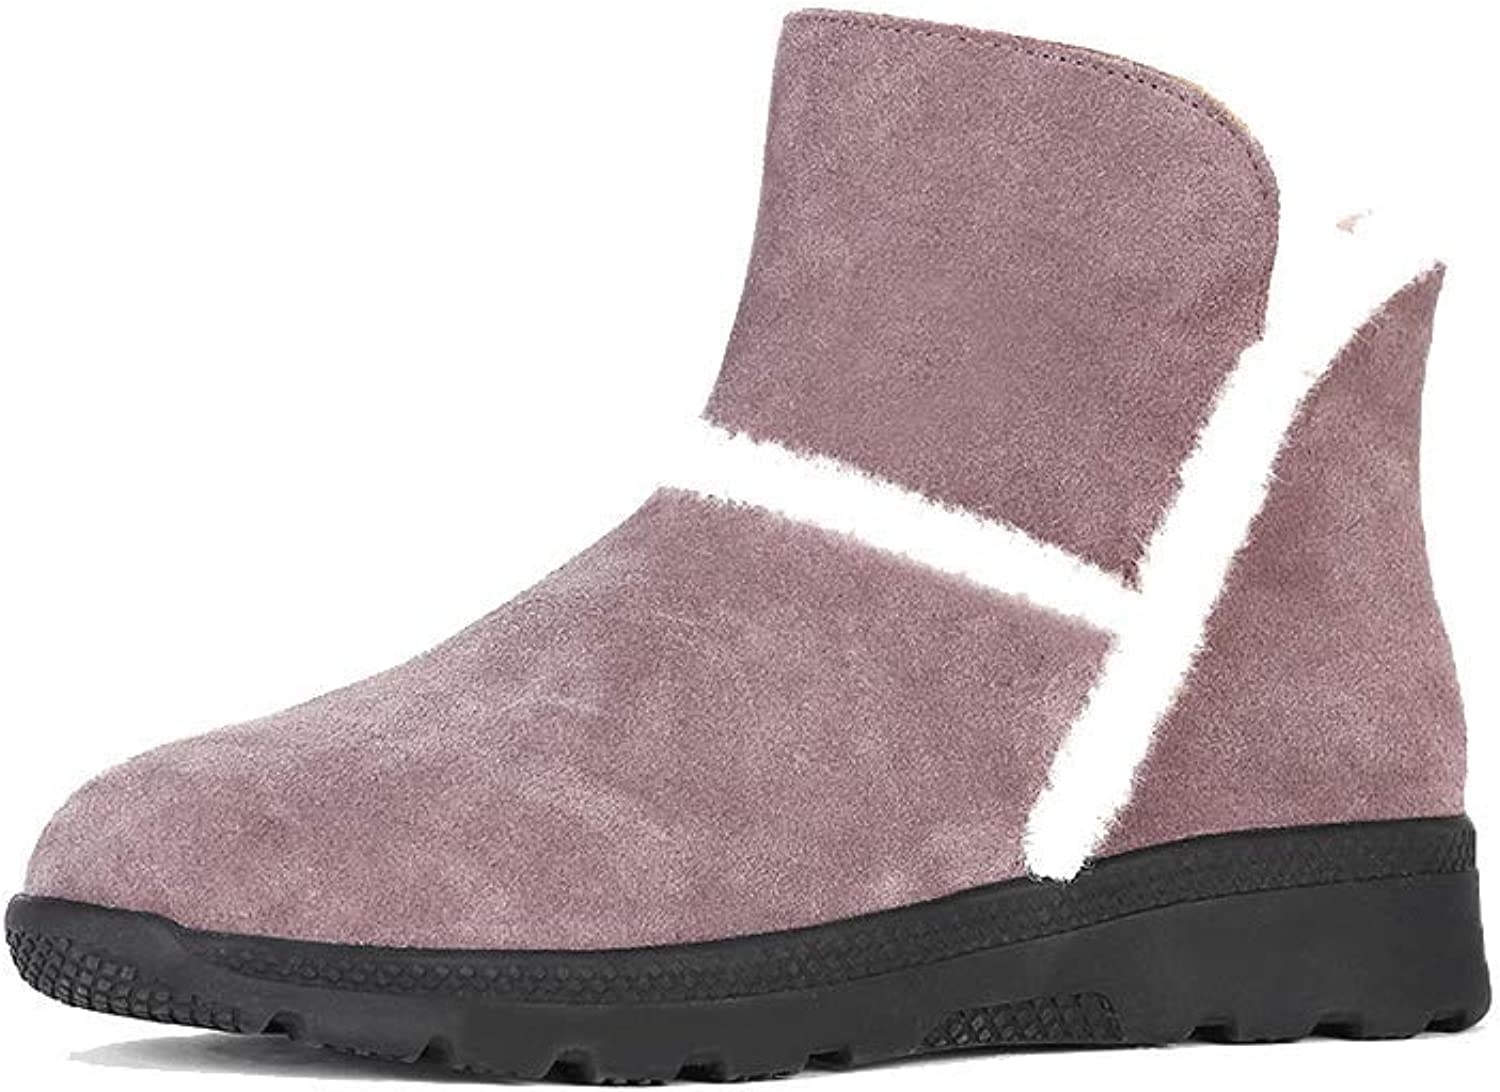 Ailj Snow Boots, Ladies Outdoor Leather Fluff One Booties Non-Slip Warm Boots Thick Cotton Boots (3 colors) (color   Pink, Size   40 EU 7.5 US 6.5 UK 25cm JP)